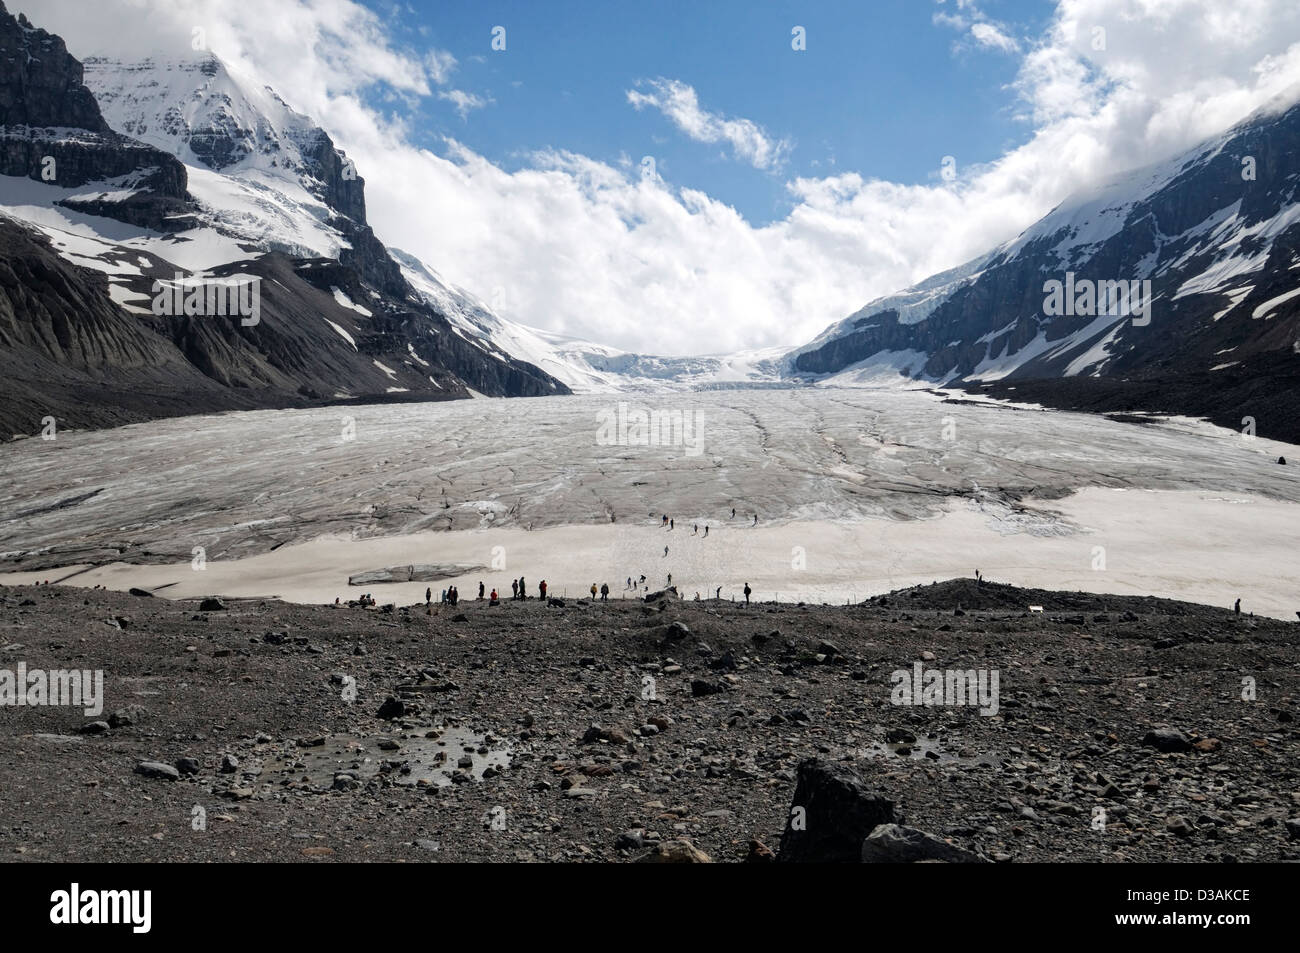 Athabasca Glacier Columbia Icefield Jasper National Park Alberta Canada climate change retreat shrink shrinking - Stock Image